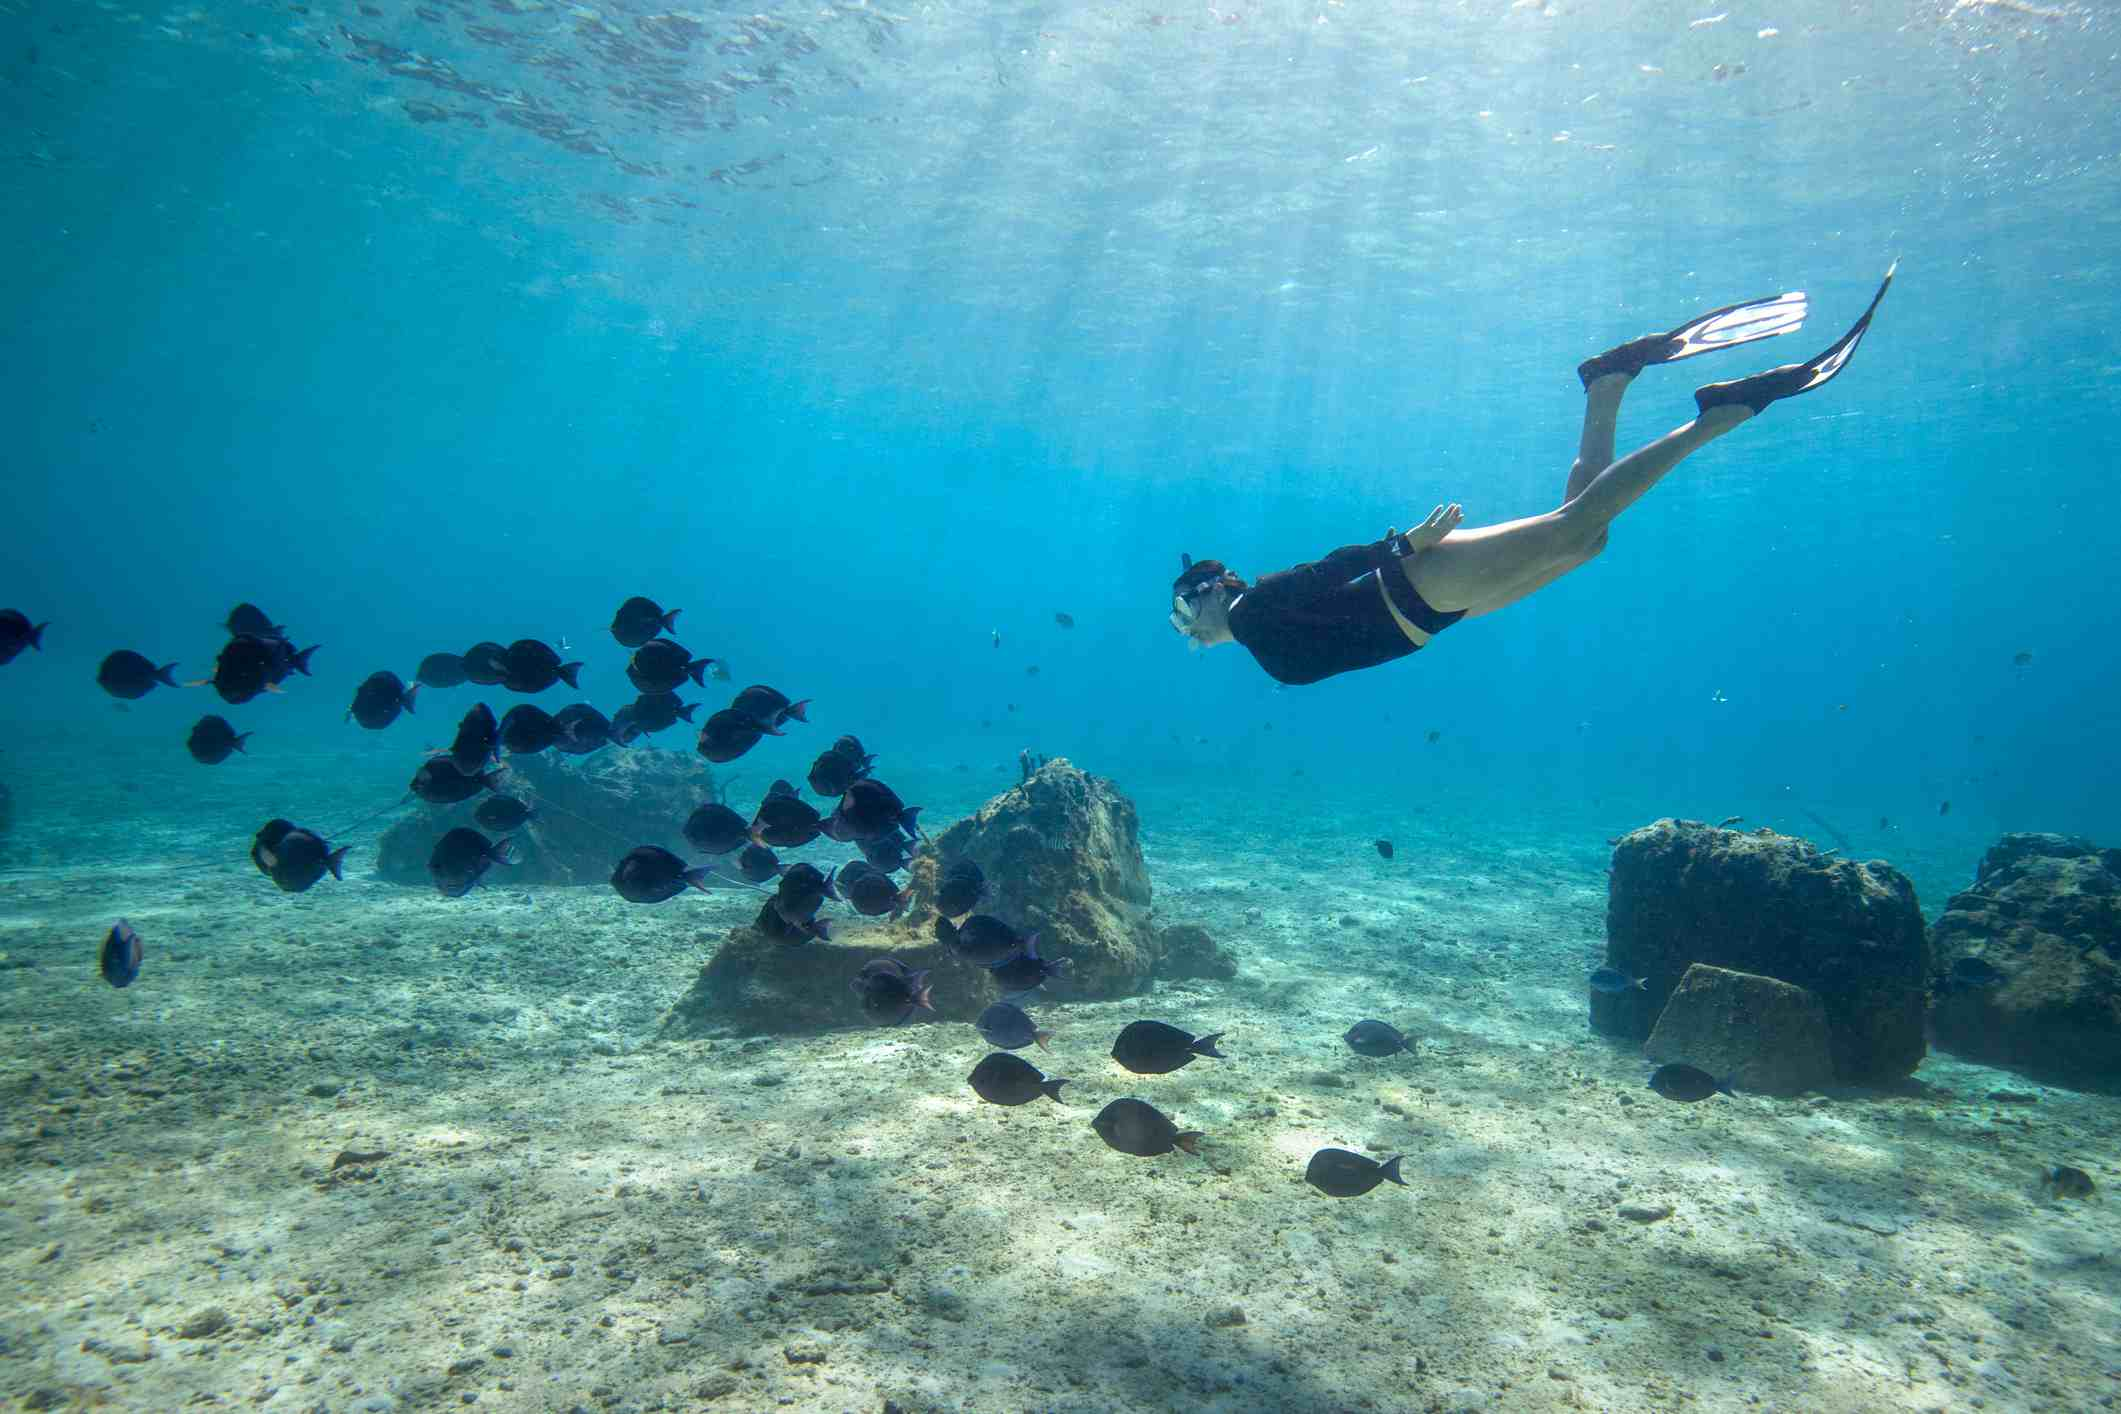 Snorkeling in Cozumel with school of fish